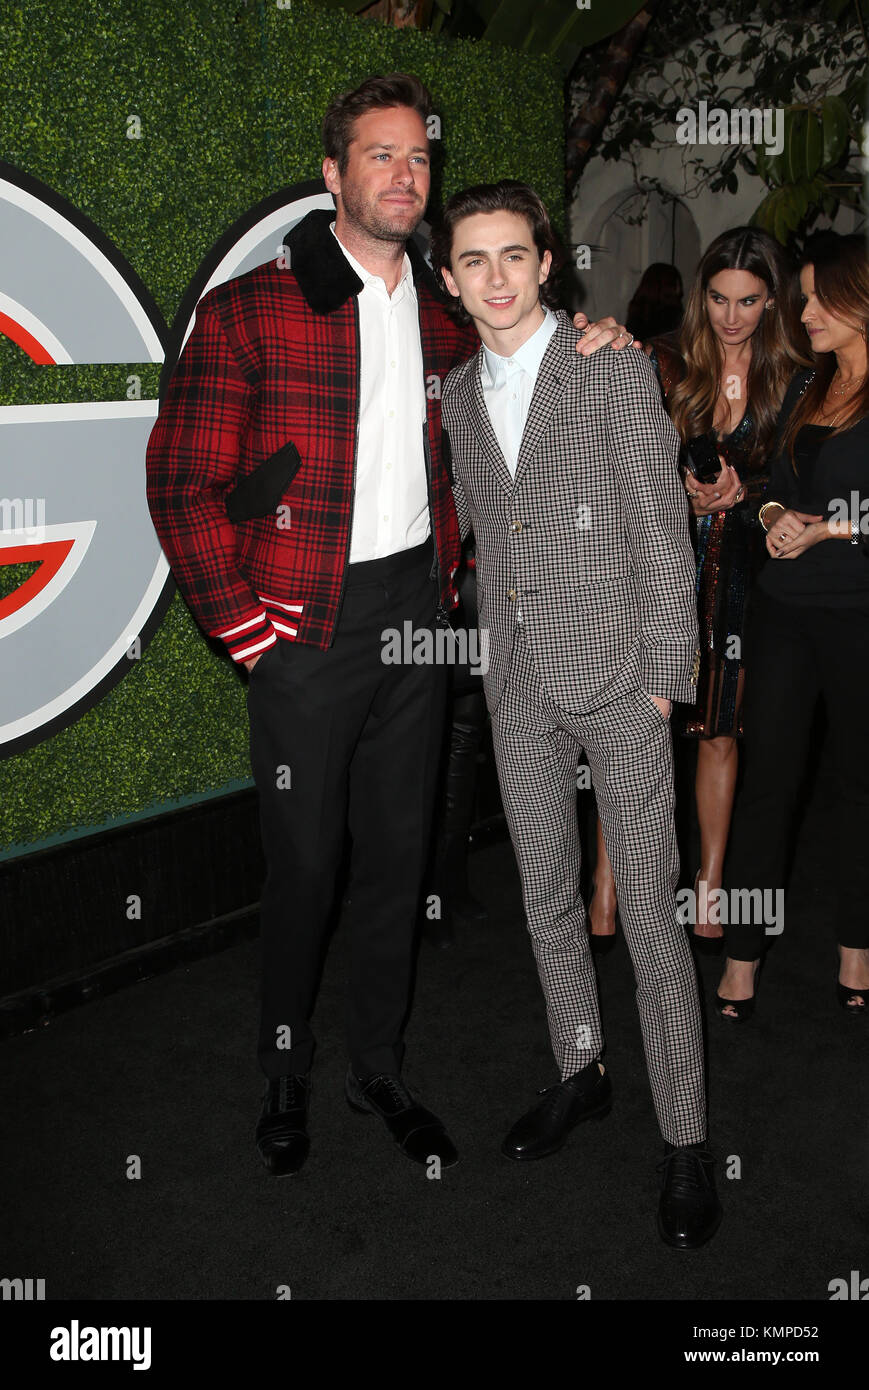 Gq Men Of The Year Party High Resolution Stock Photography And Images Page 32 Alamy